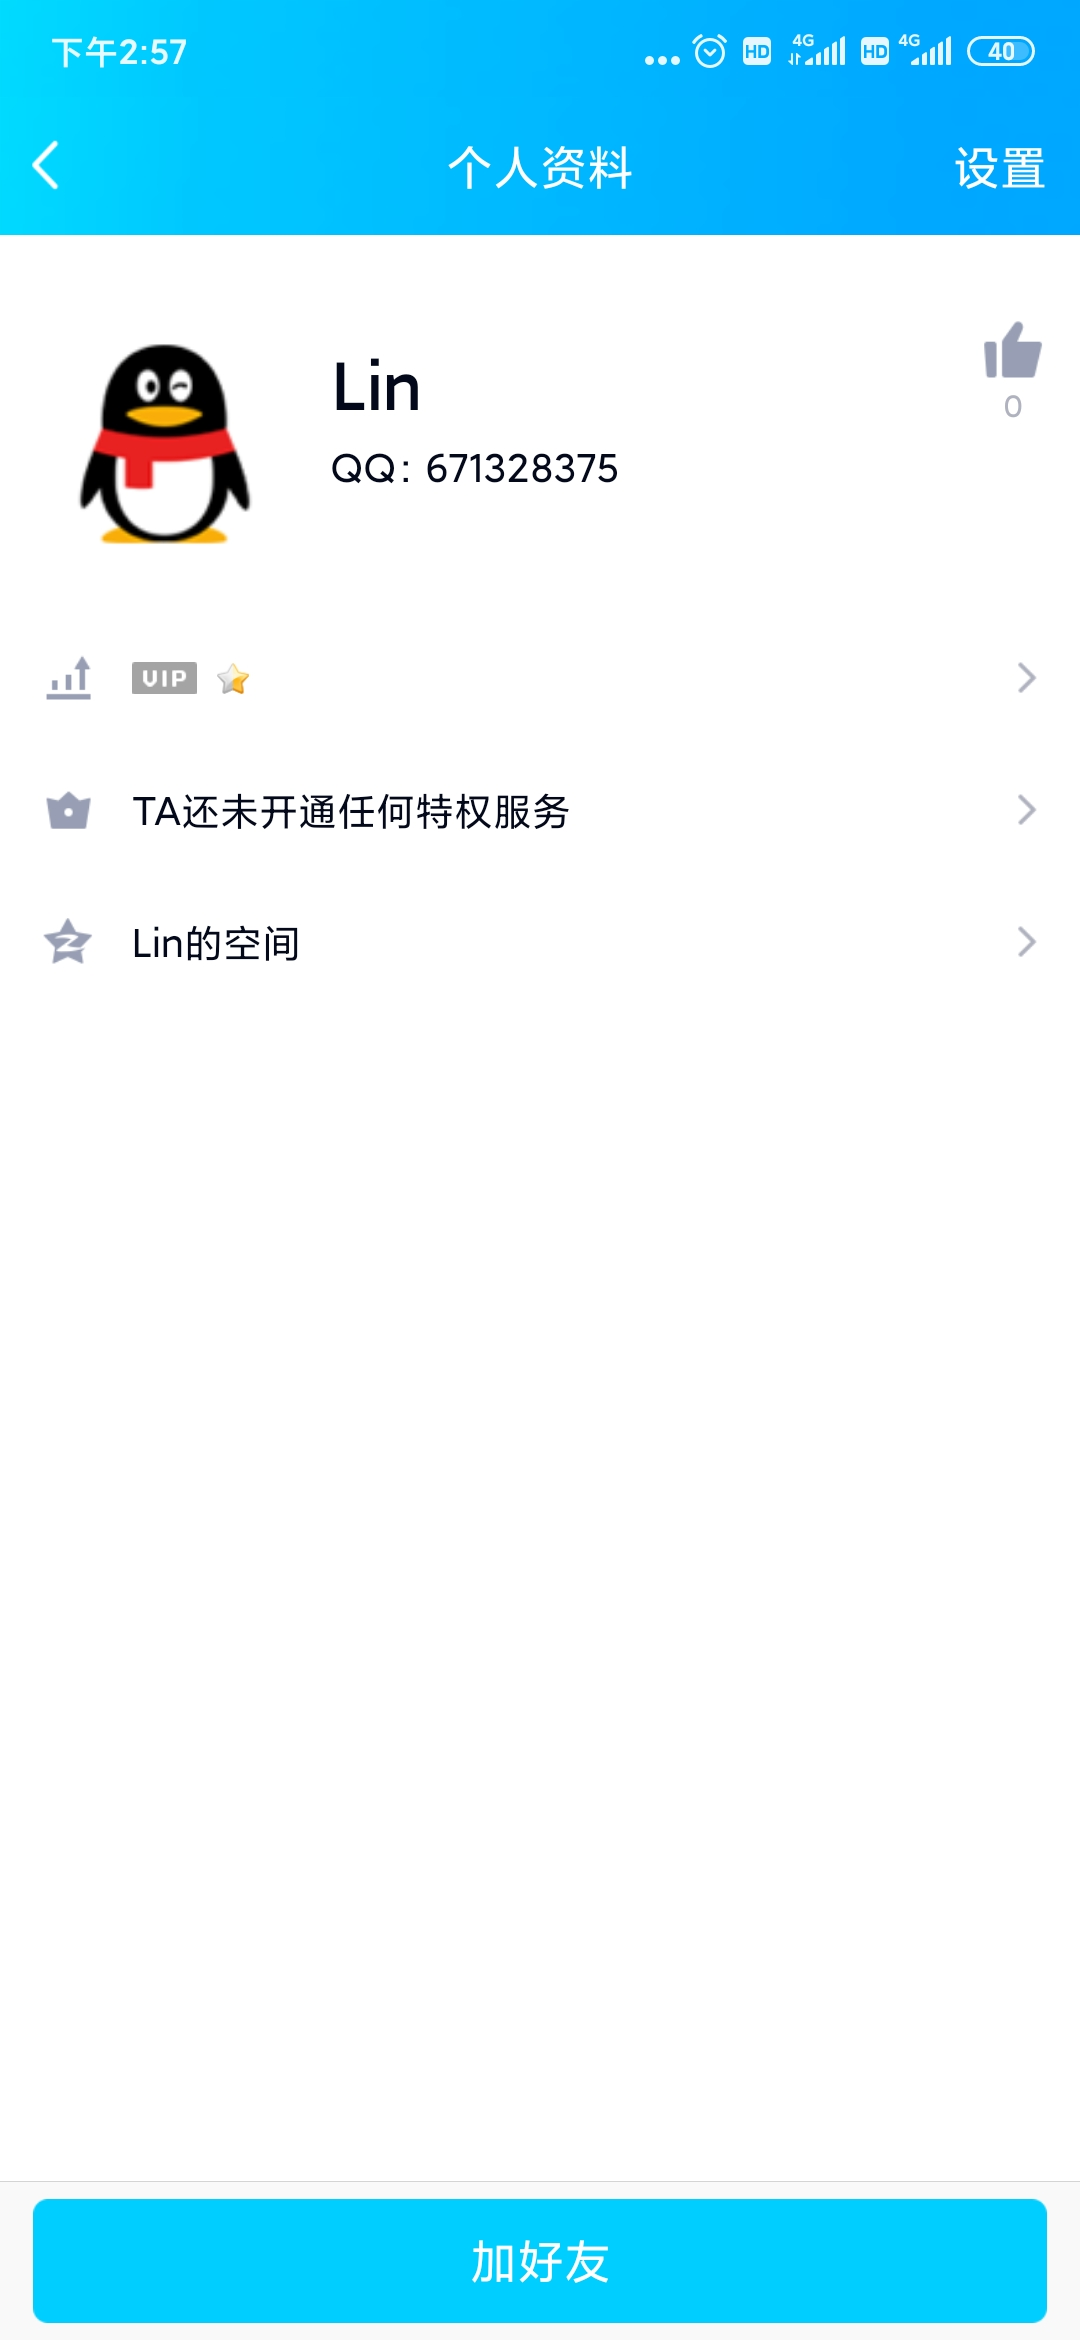 Screenshot_2020-06-12-14-57-51-457_com.tencent.mobileqq.jpg